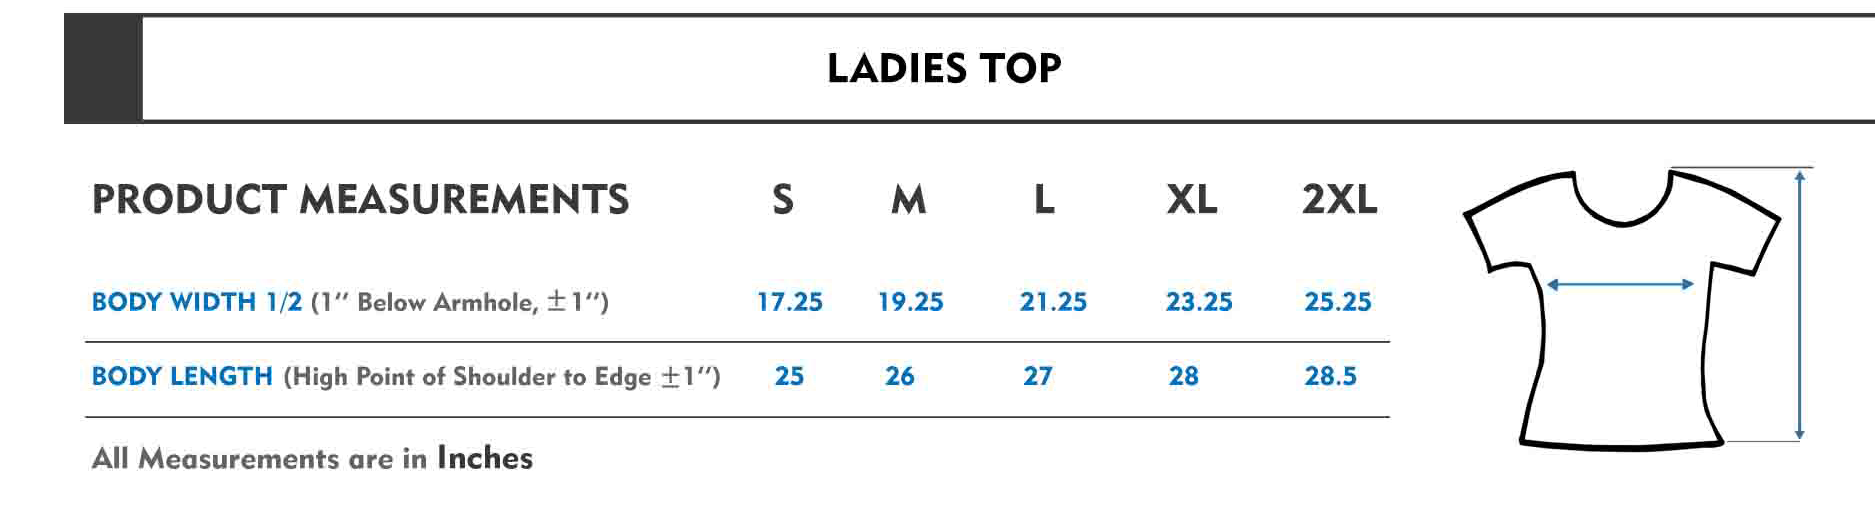 Ladies Top Size Chart